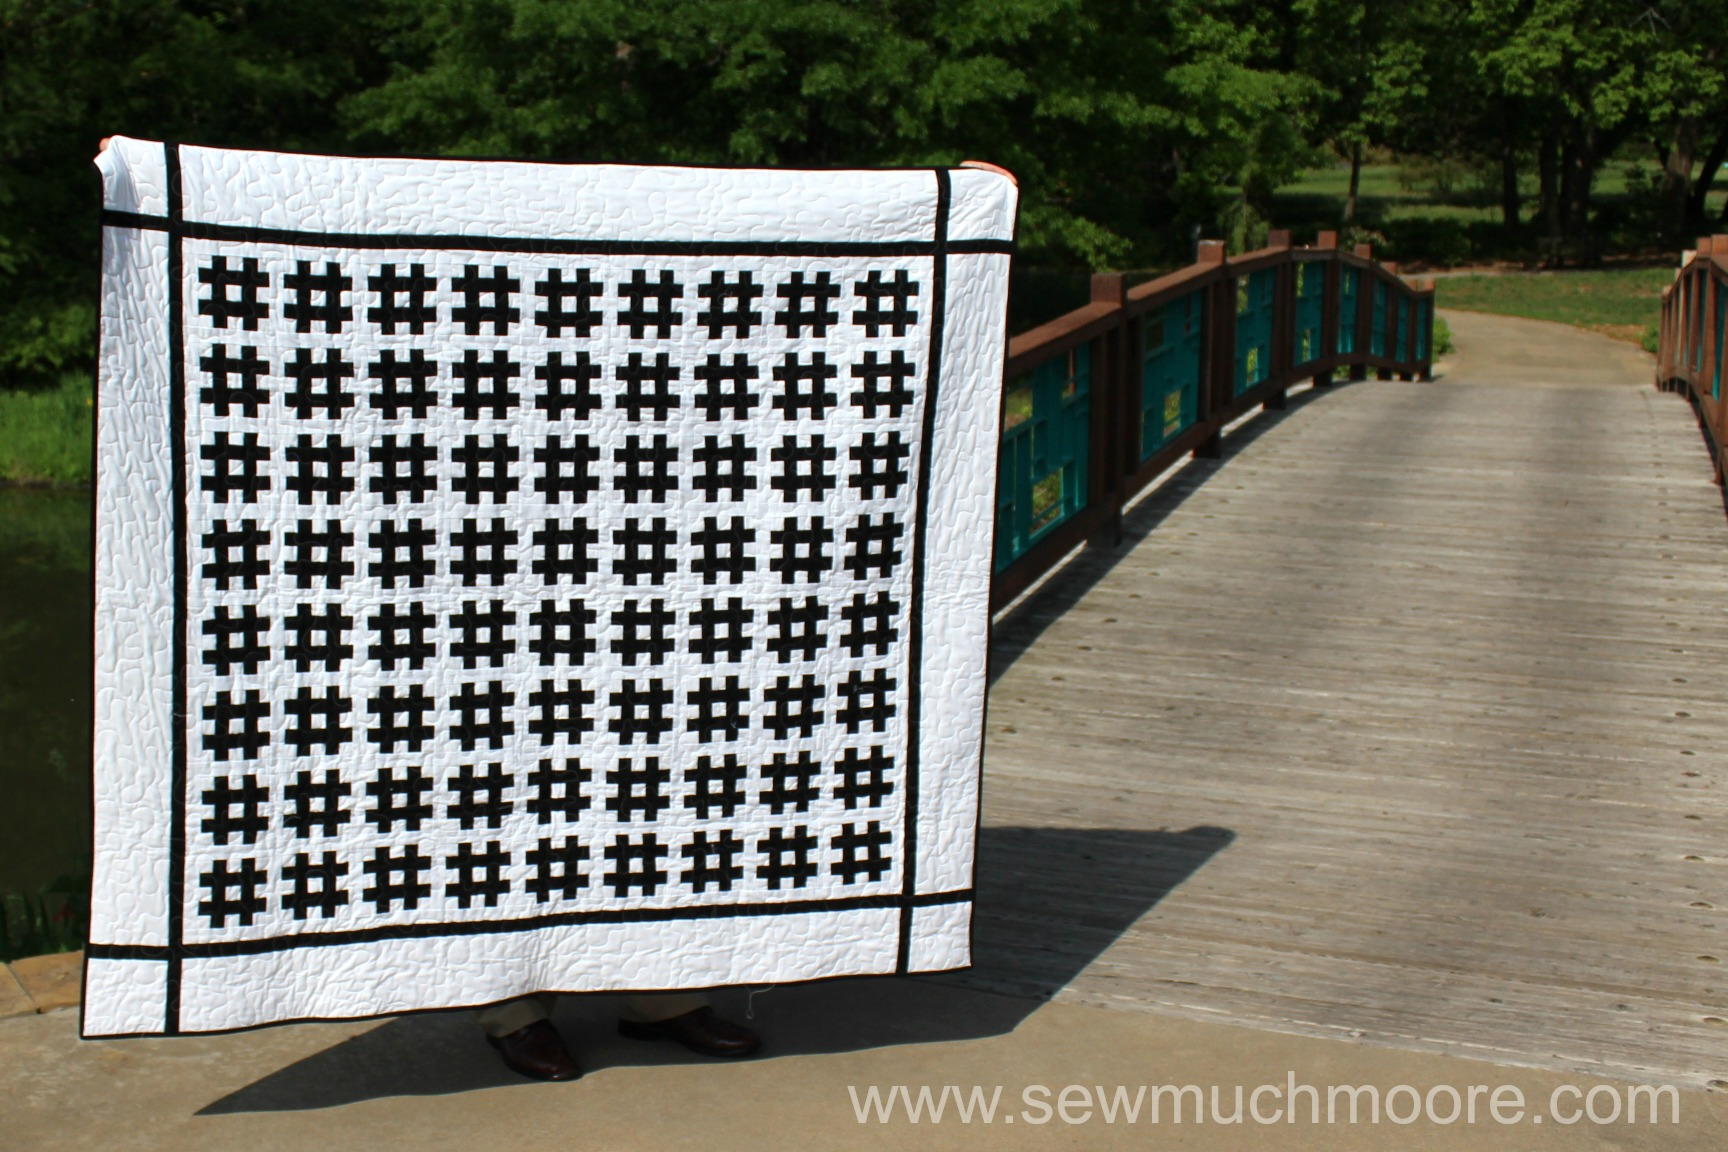 Hashtag Graduation Quilt - Make this fun and modern quilt! Watch the video and use the tutorial and make your own! #DIY #Quilt #ModernQuilting #HashtagQuiltBlock #HastagQuilt #StripologyRuler #ContemporaryQuilt #QuiltPhotography